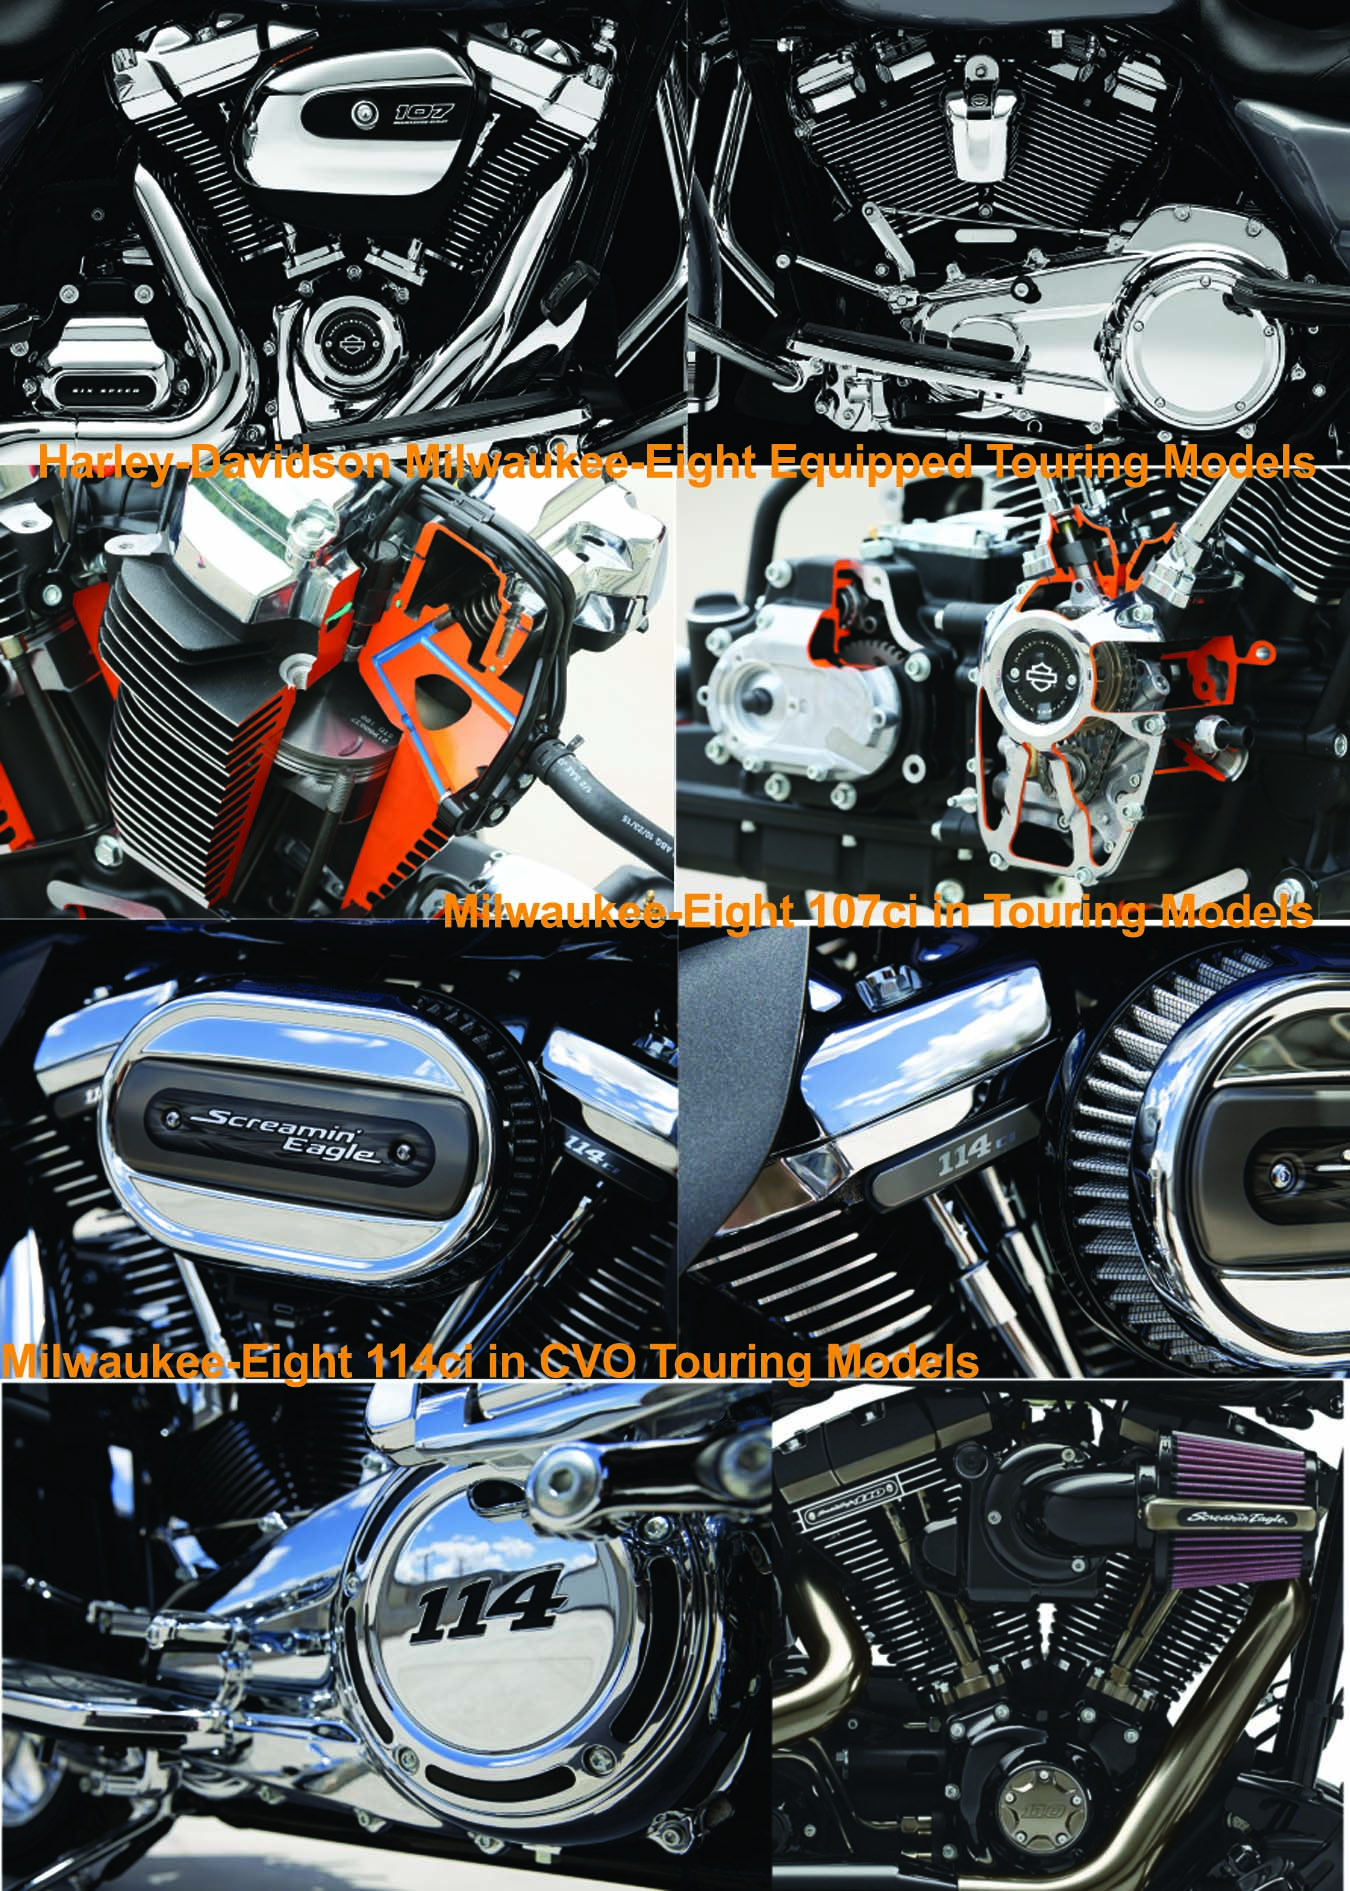 2017 H-D Fr Cover Feature Pix